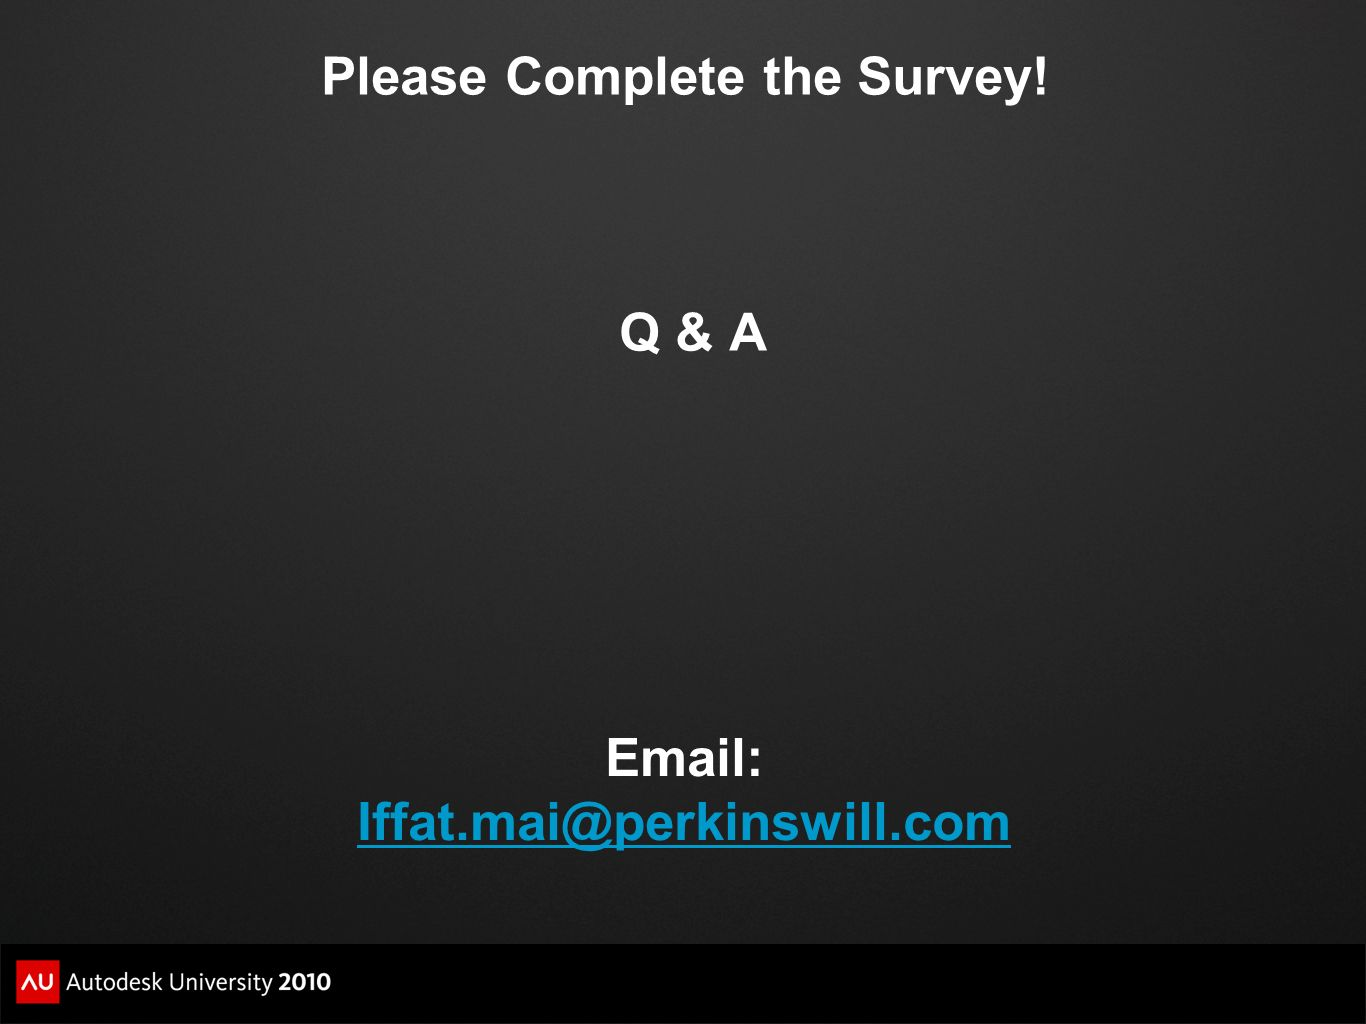 Please Complete the Survey!